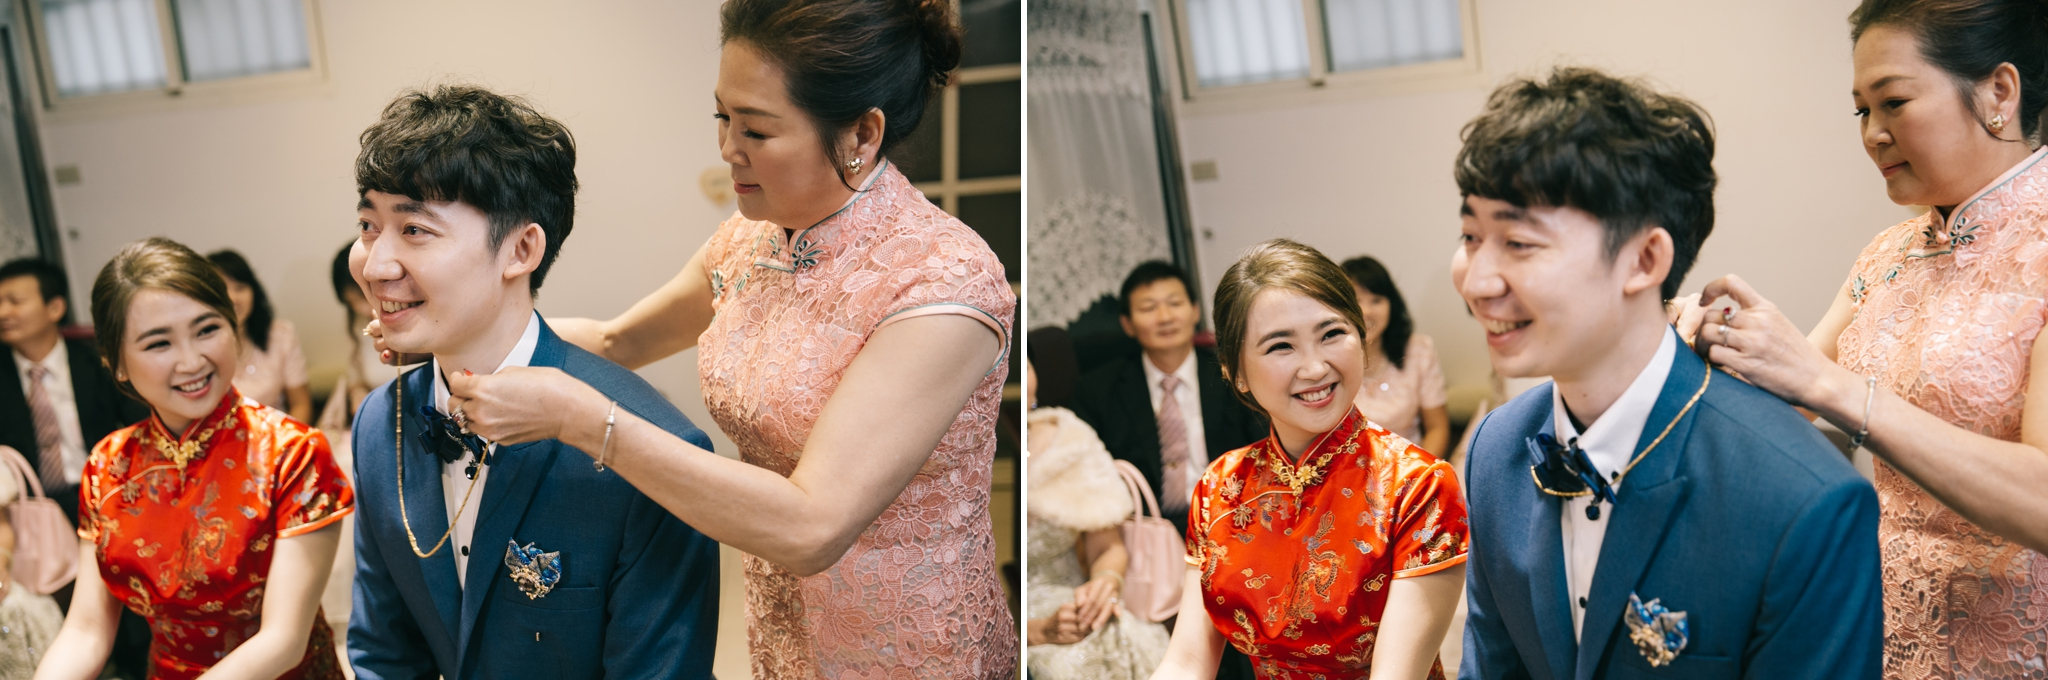 Keddy+Richard-wedding-新莊頤品飯店-046.jpg